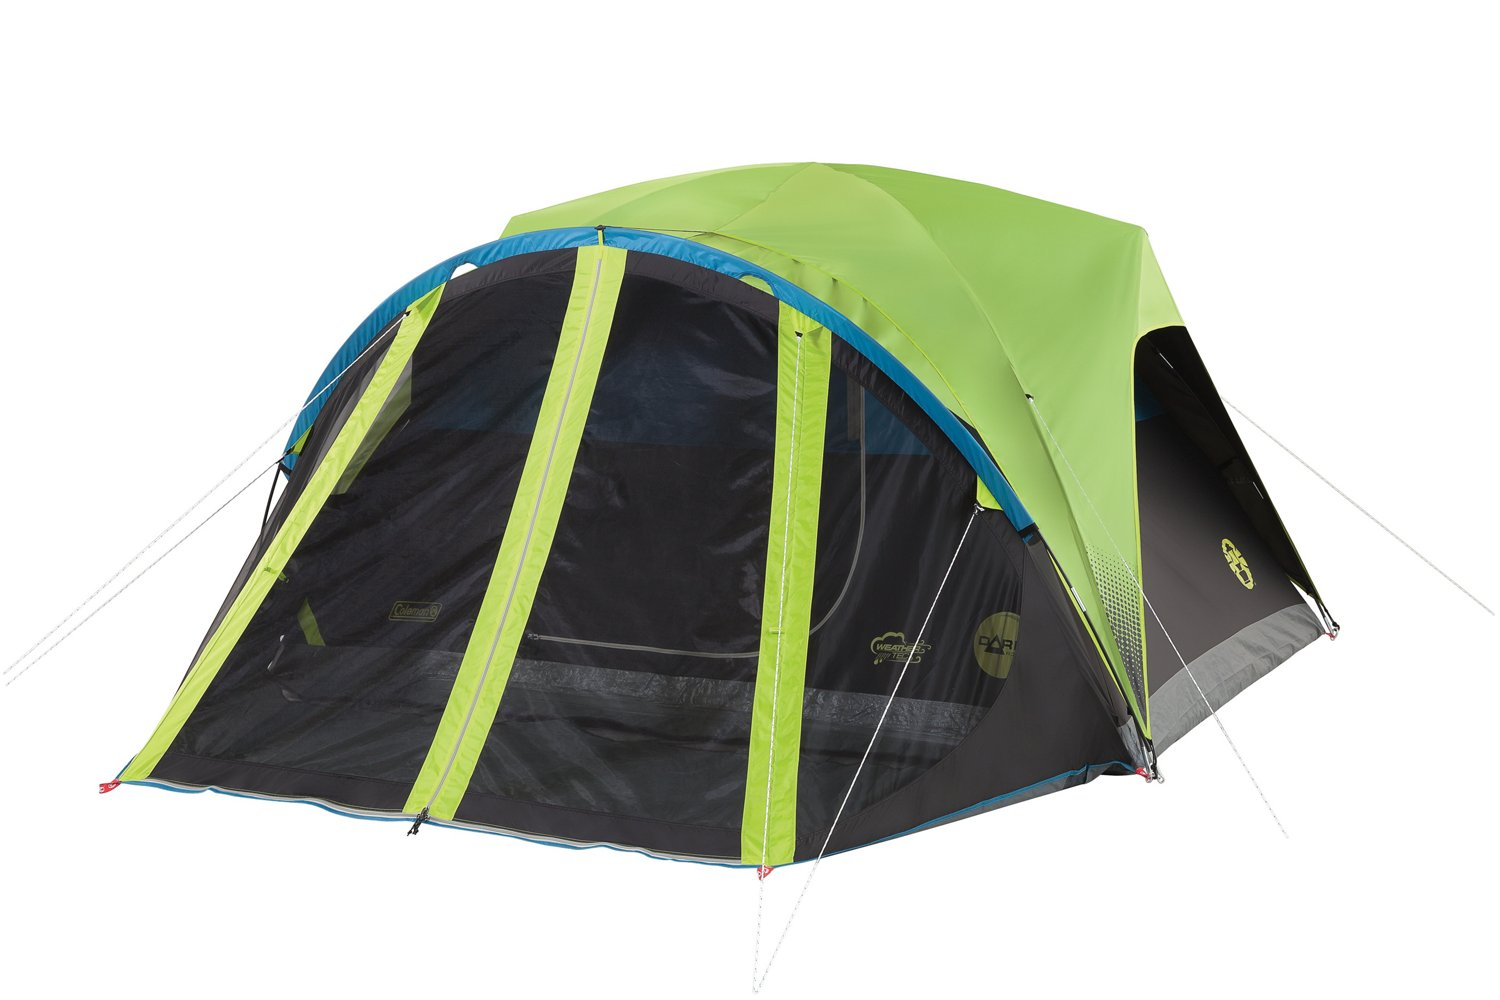 3 Bedroom Tent With Porch & 6 Person Screened 3 Room Tent